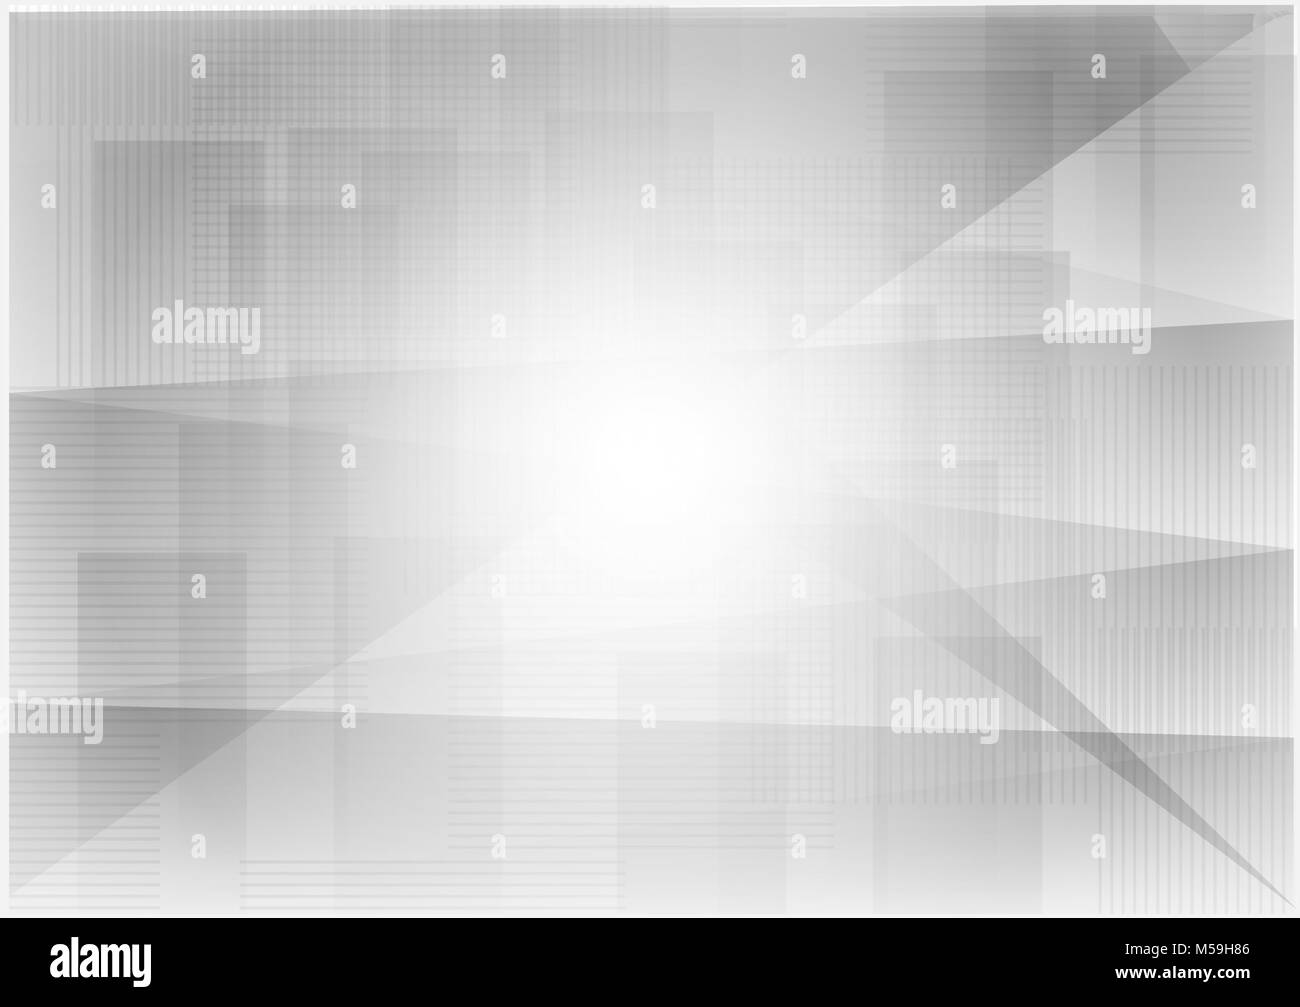 Vector Drawing Straight Lines : Straight stock vector images alamy